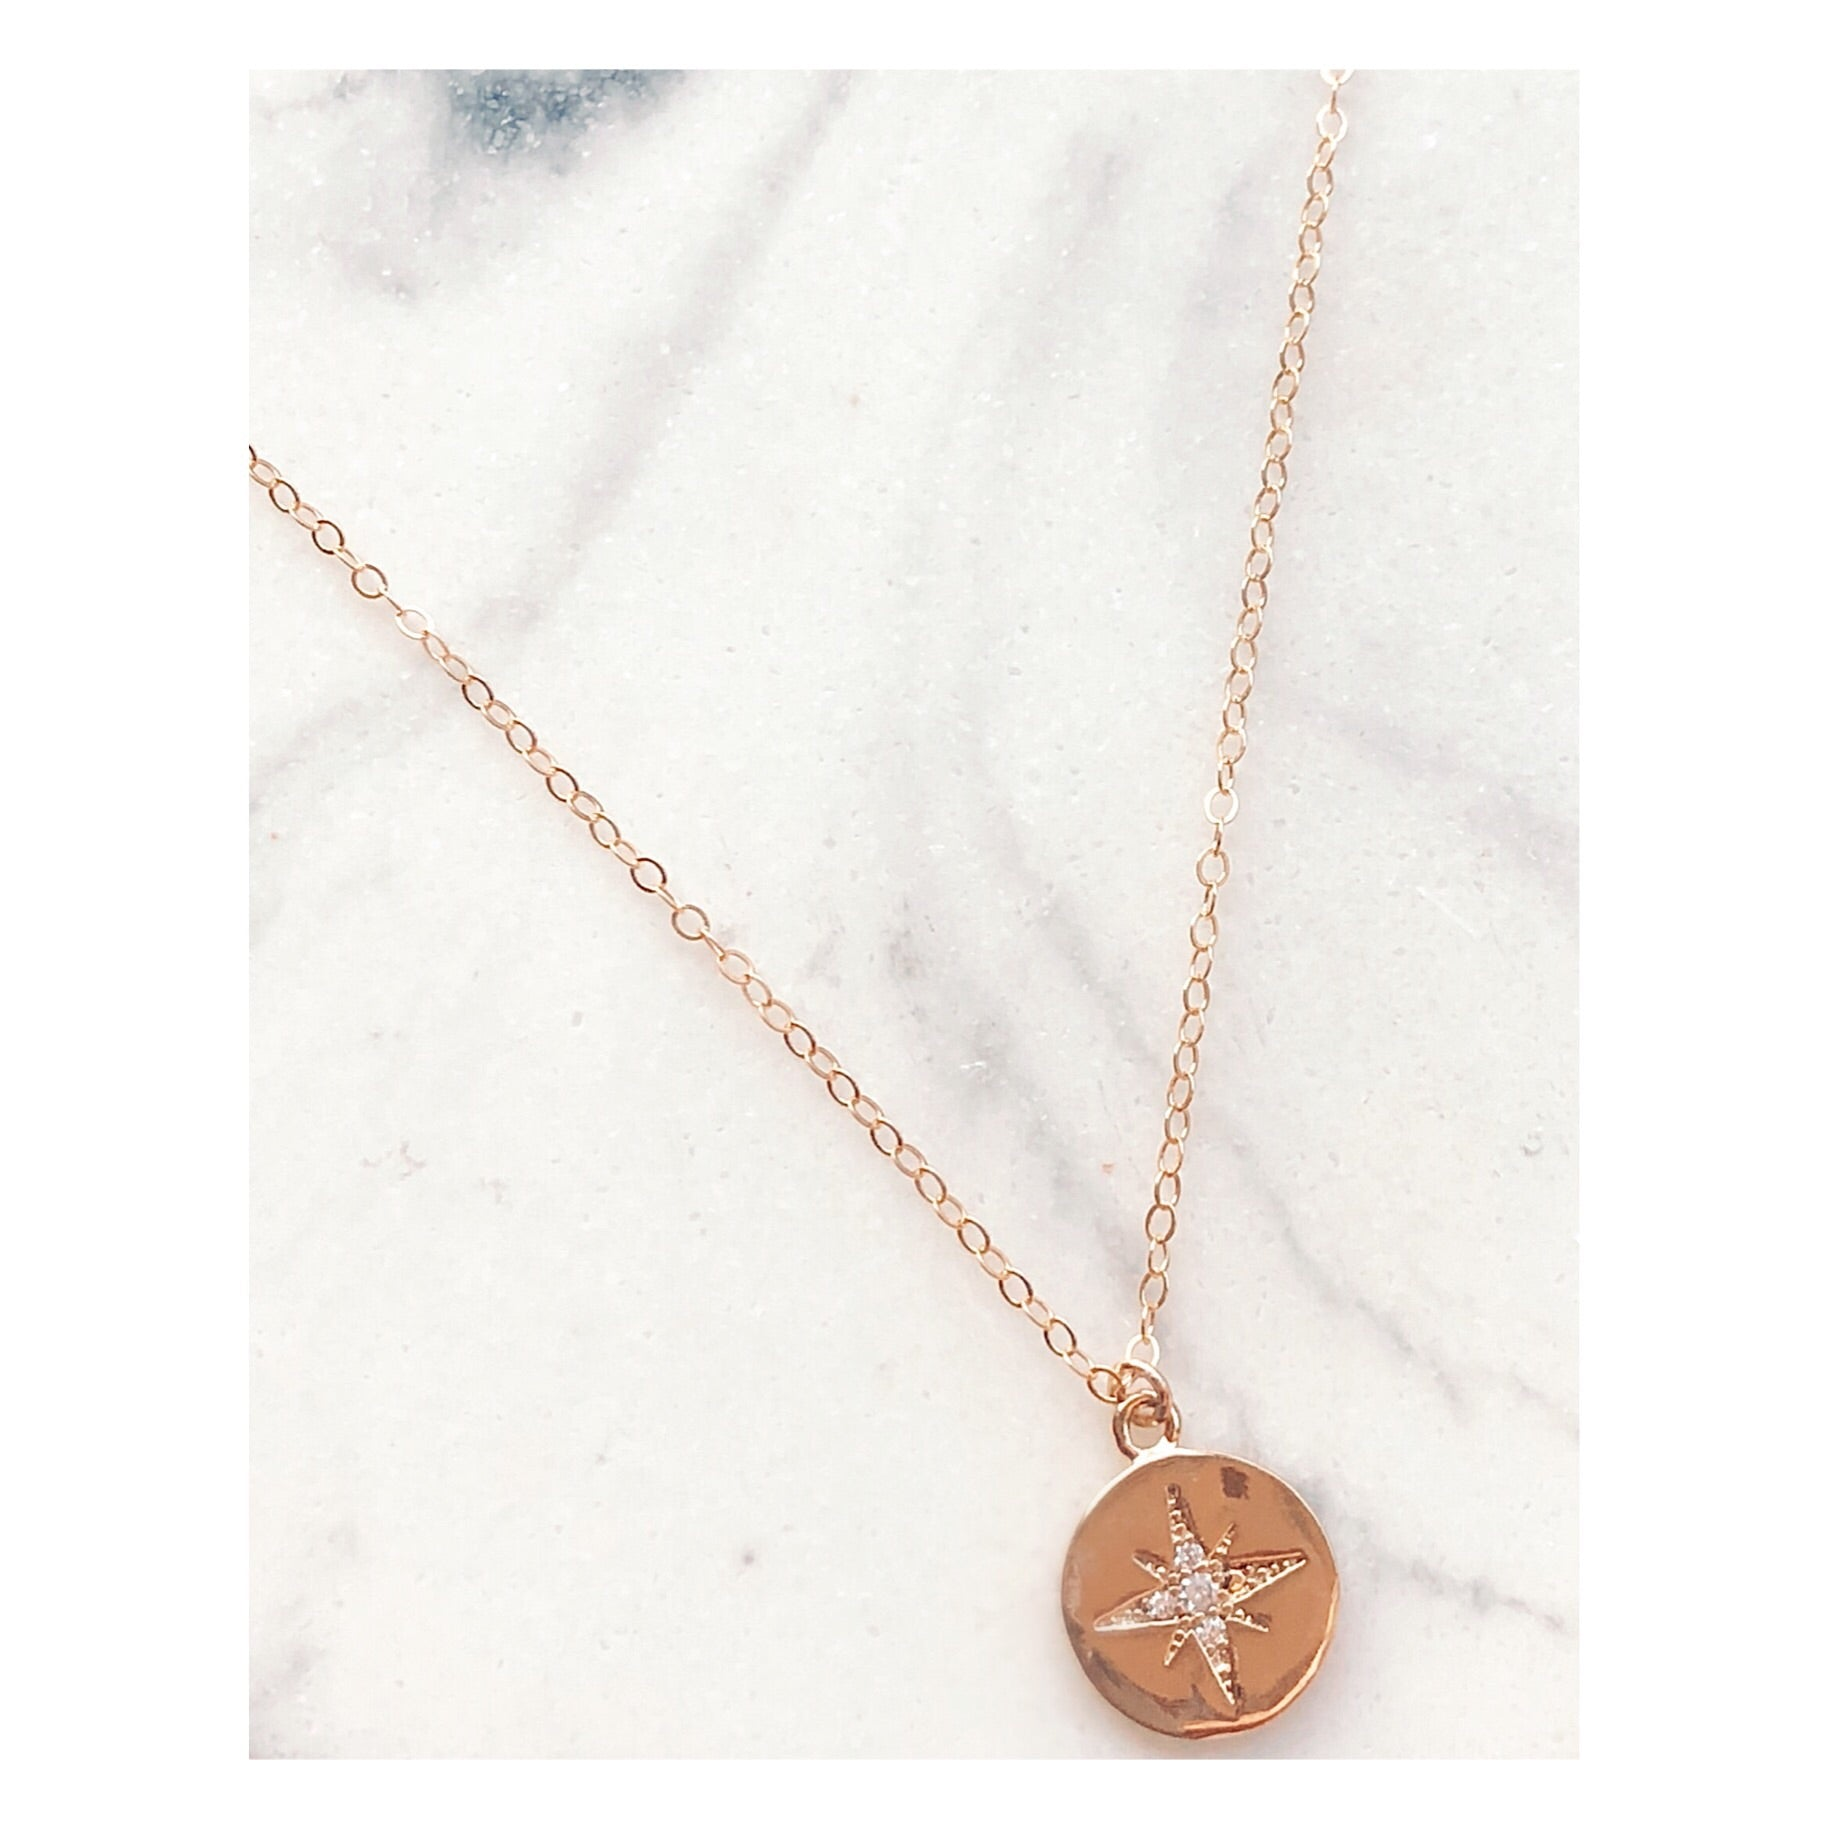 Cole Compass Pendant Necklace (Gold-Filled)